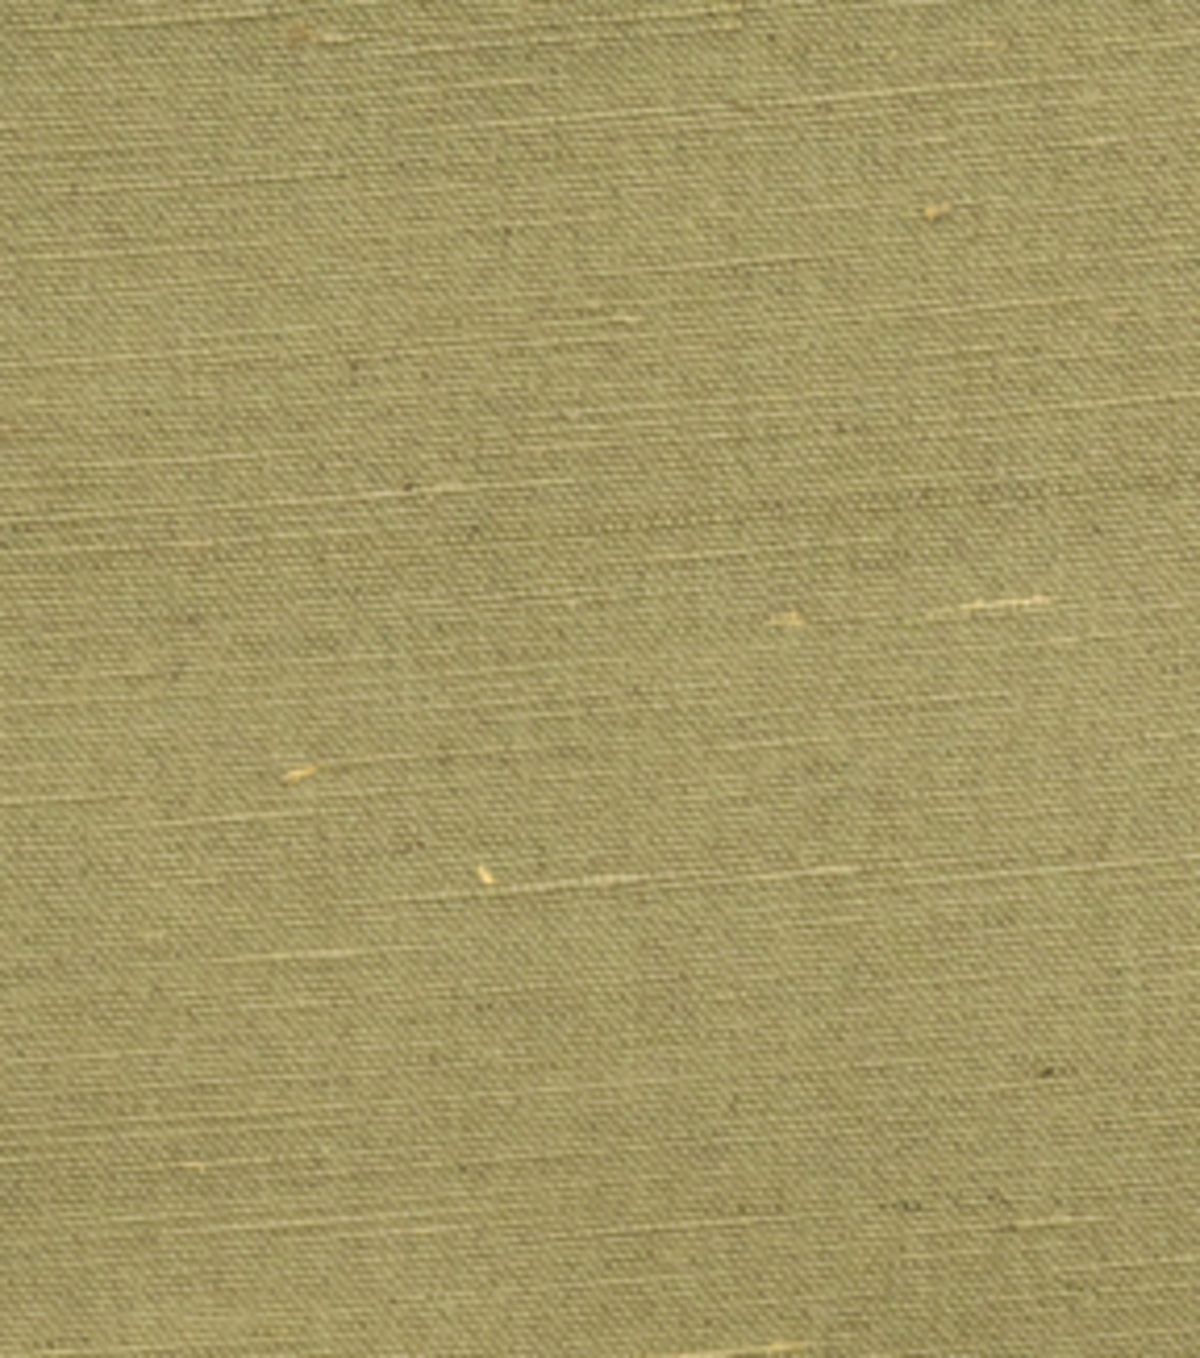 Home Decor 8\u0022x8\u0022 Fabric Swatch-Signature Series Sonoma Linen-Cotton Moss